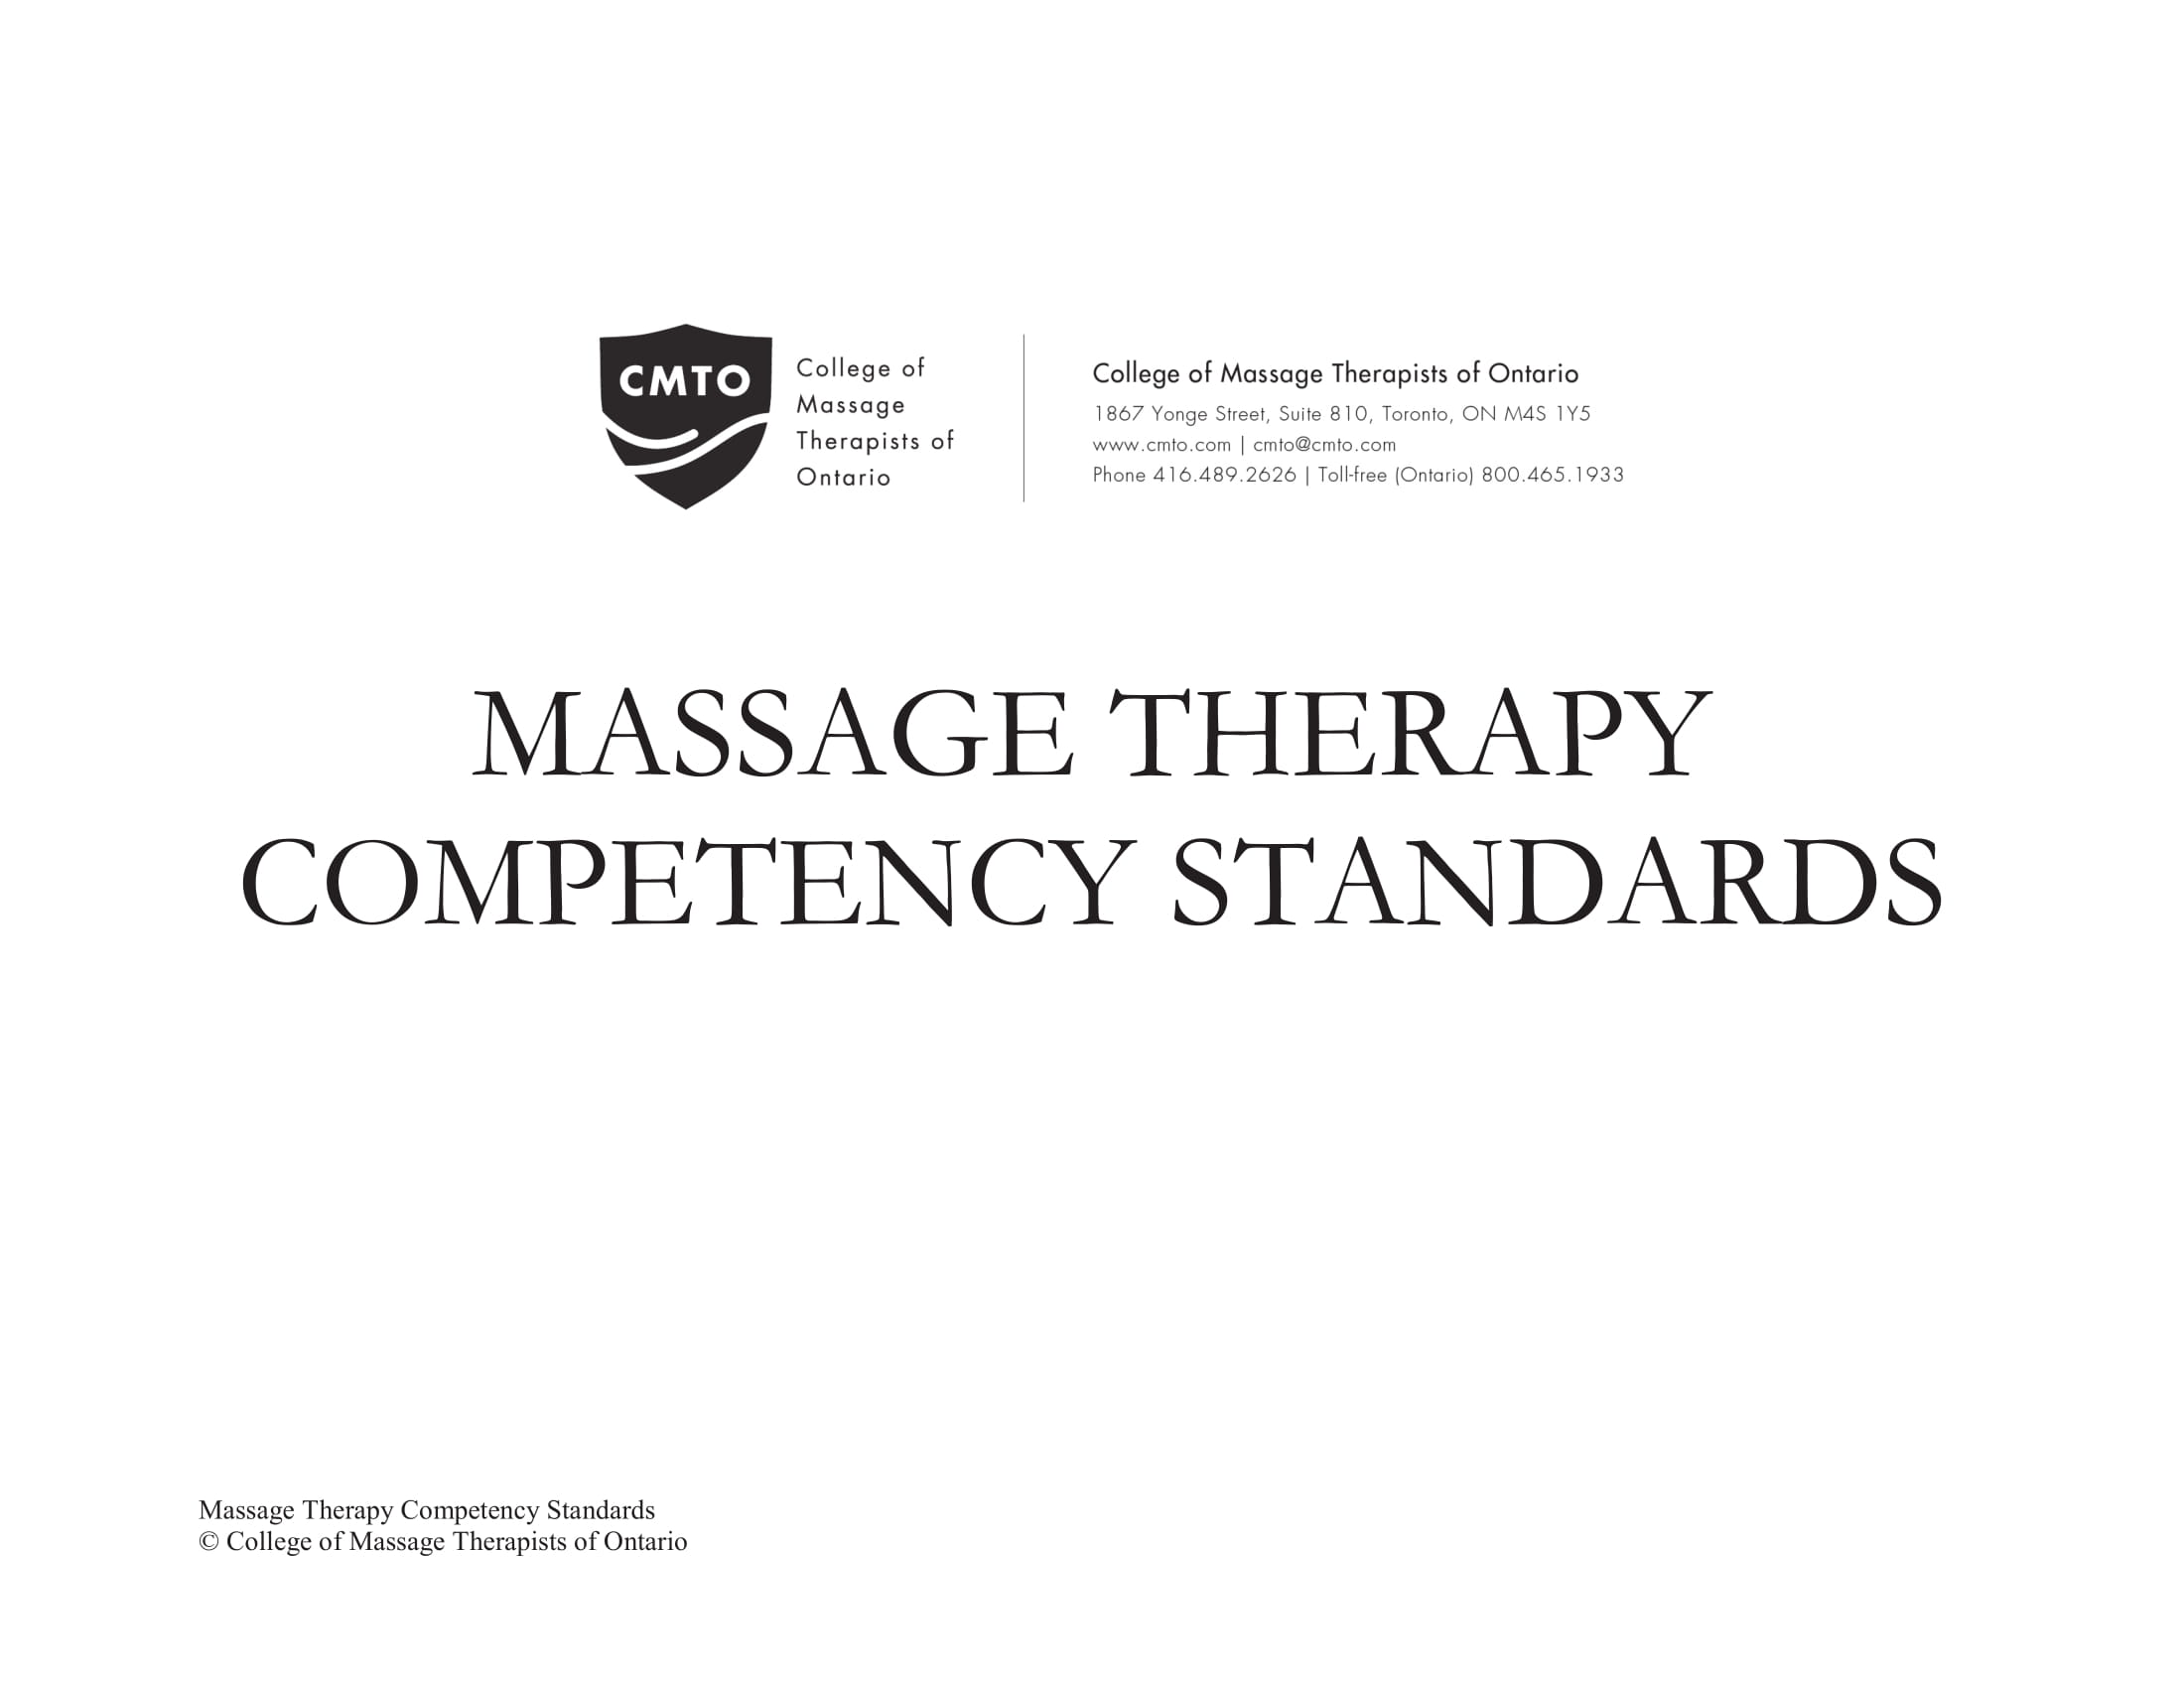 massage therapy competency standards for business plan guidance example 001